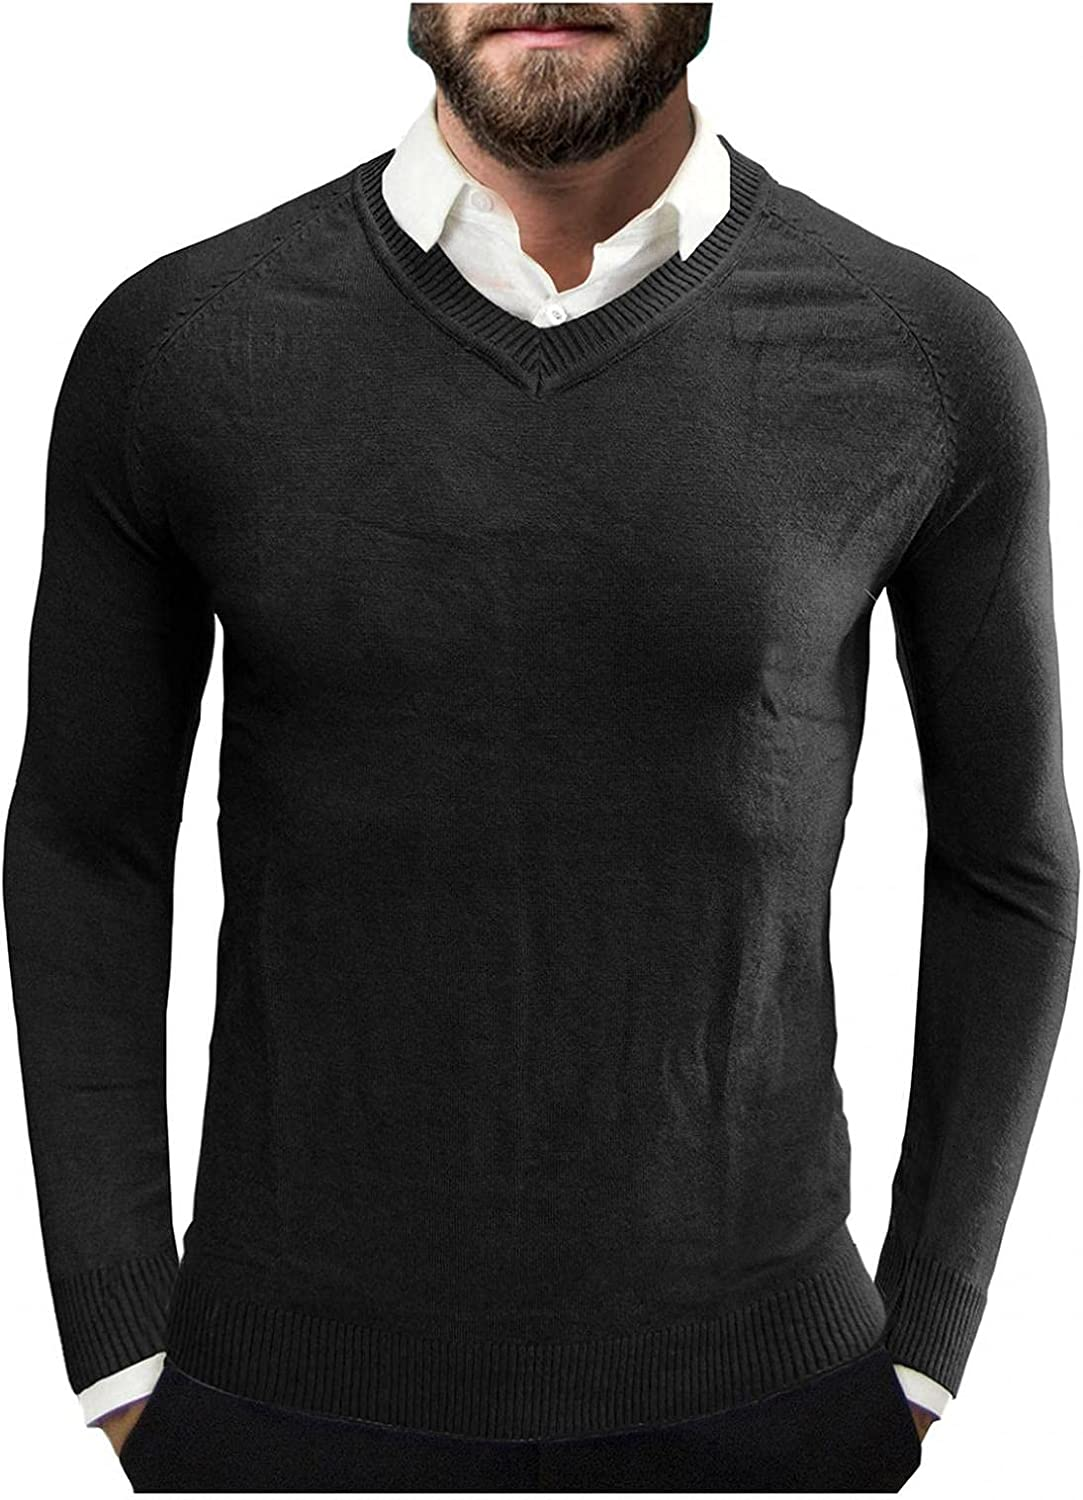 Men's Knit Sweater Long Sleeve V-Neck Sweateshirts Pullover Lightweight Casual Slim Fit Blouse Basic Designed Top